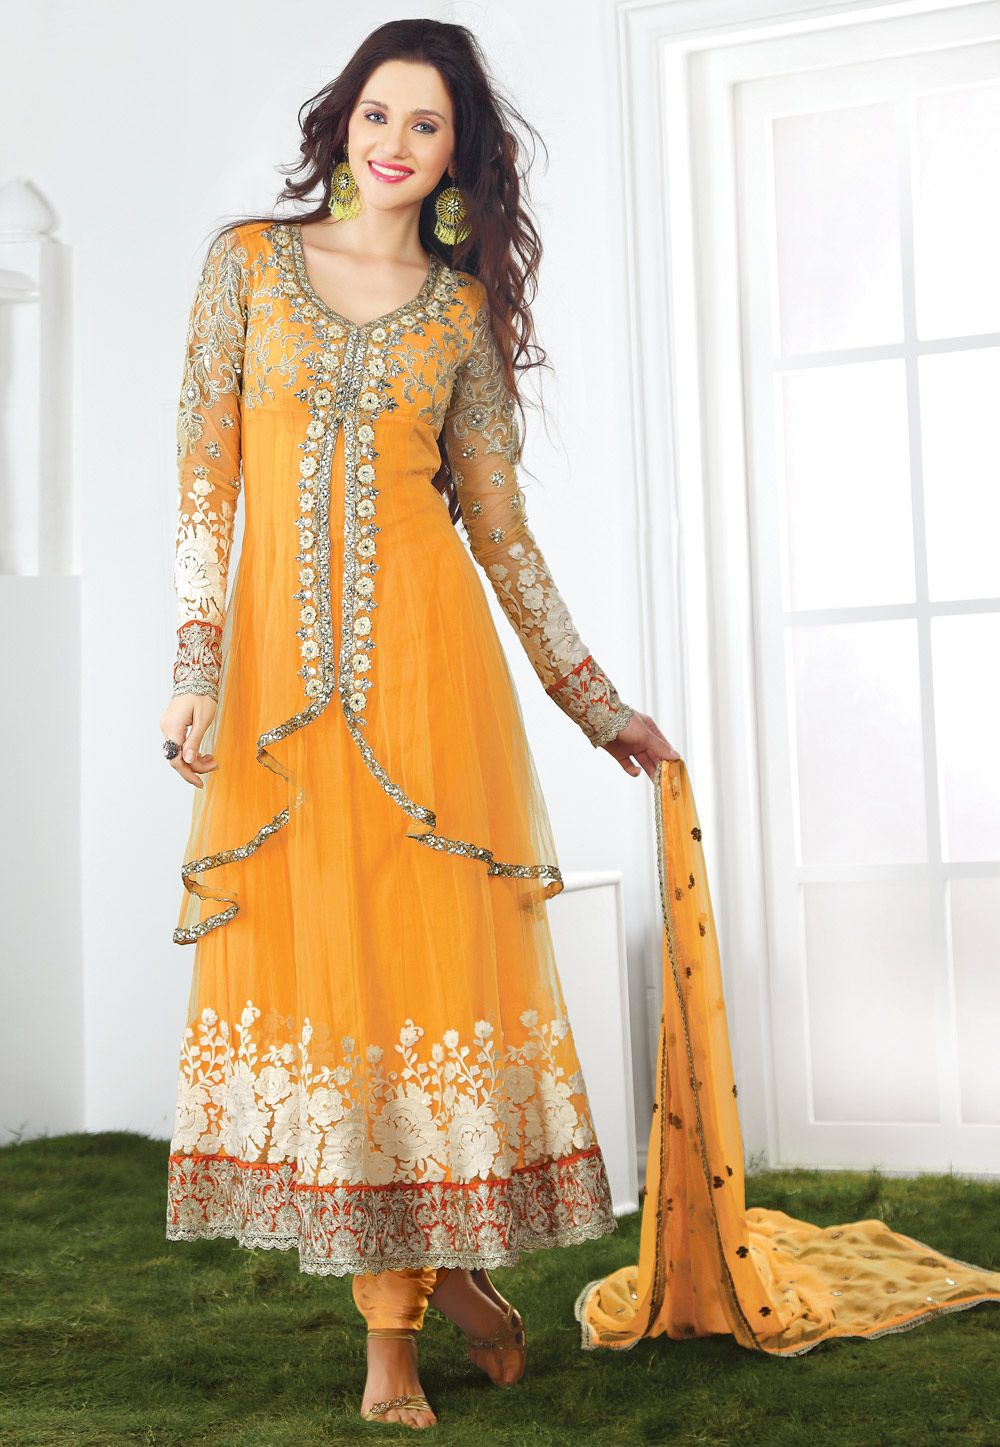 Designer salwar kameez mesmeric peach color net designer suit - Find This Pin And More On Best Selling Salwar Kameez Shop Latest Anarkali Salwar Kameez And Designs